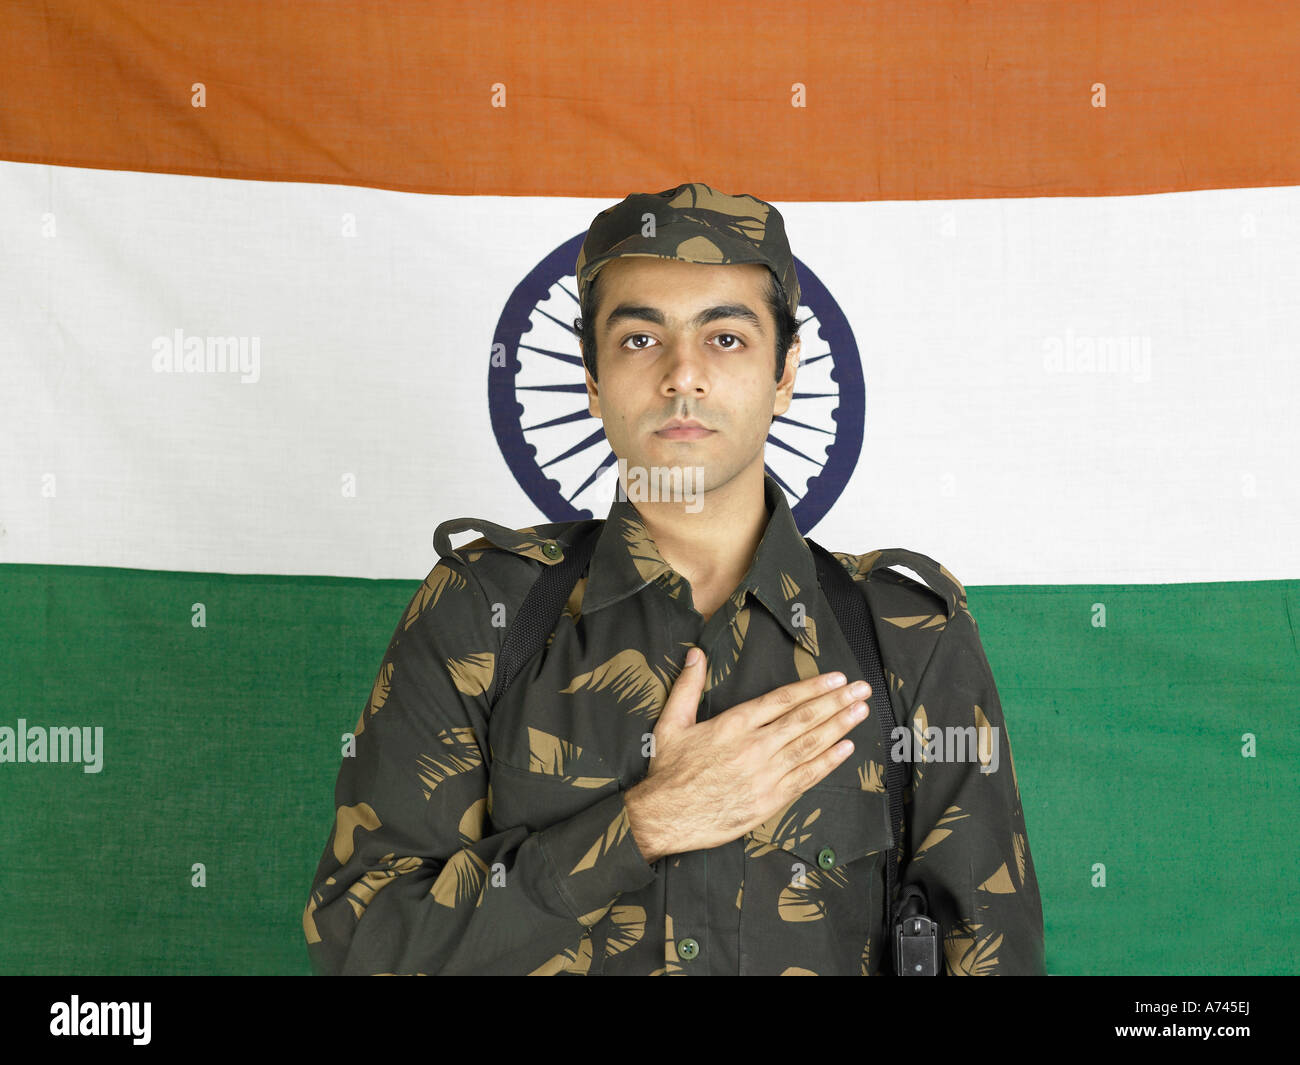 Army Man Salute Stock Photos Army Man Salute Stock Images Alamy